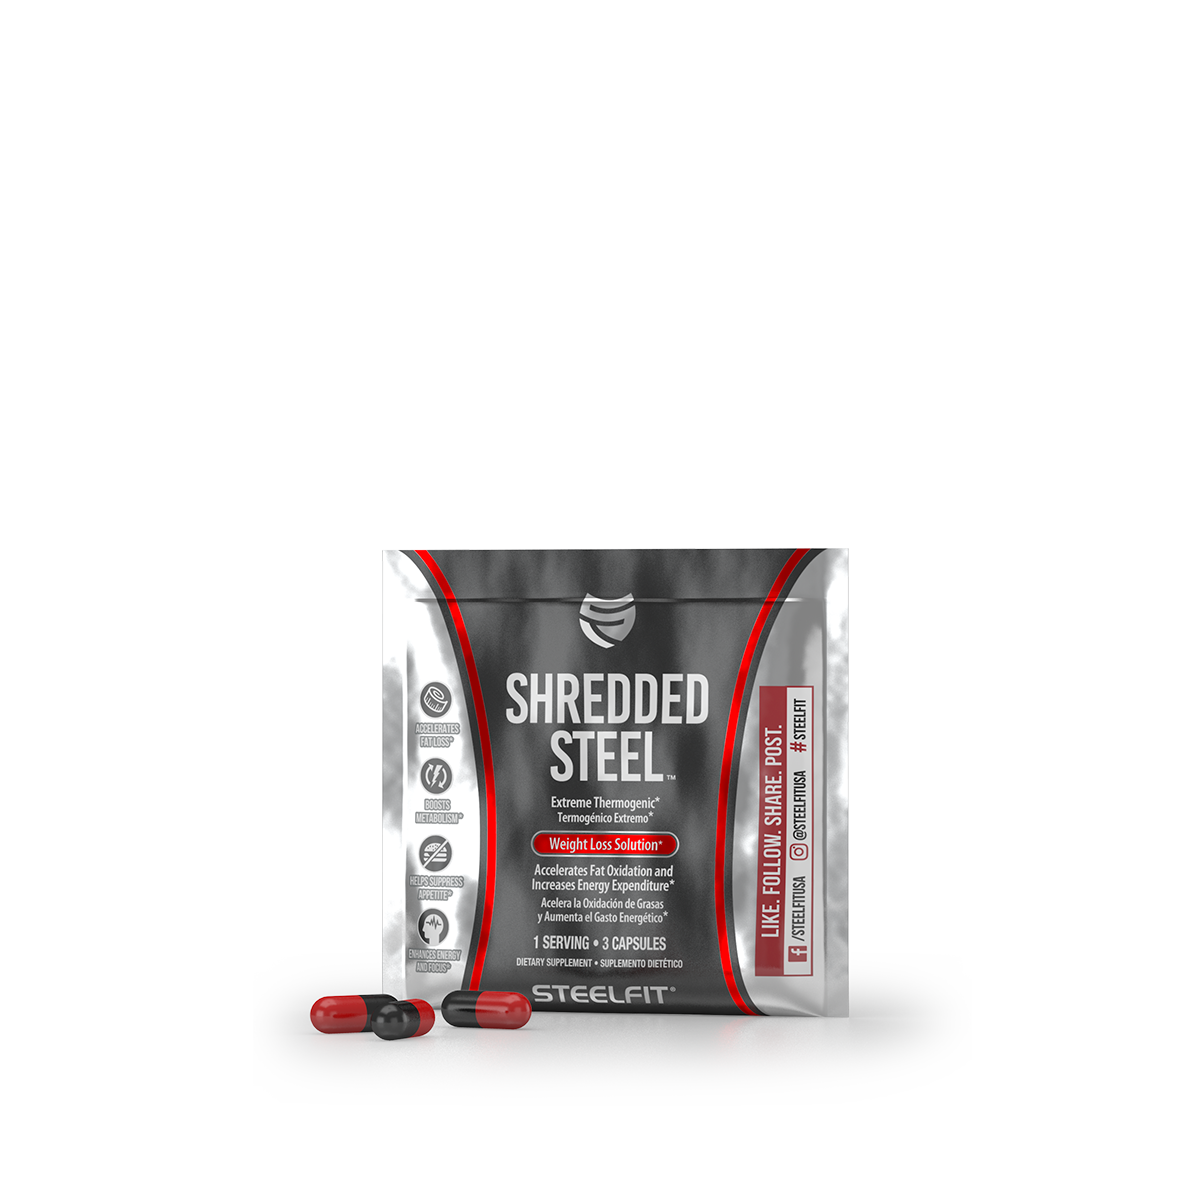 Shredded Steel - Single Serving